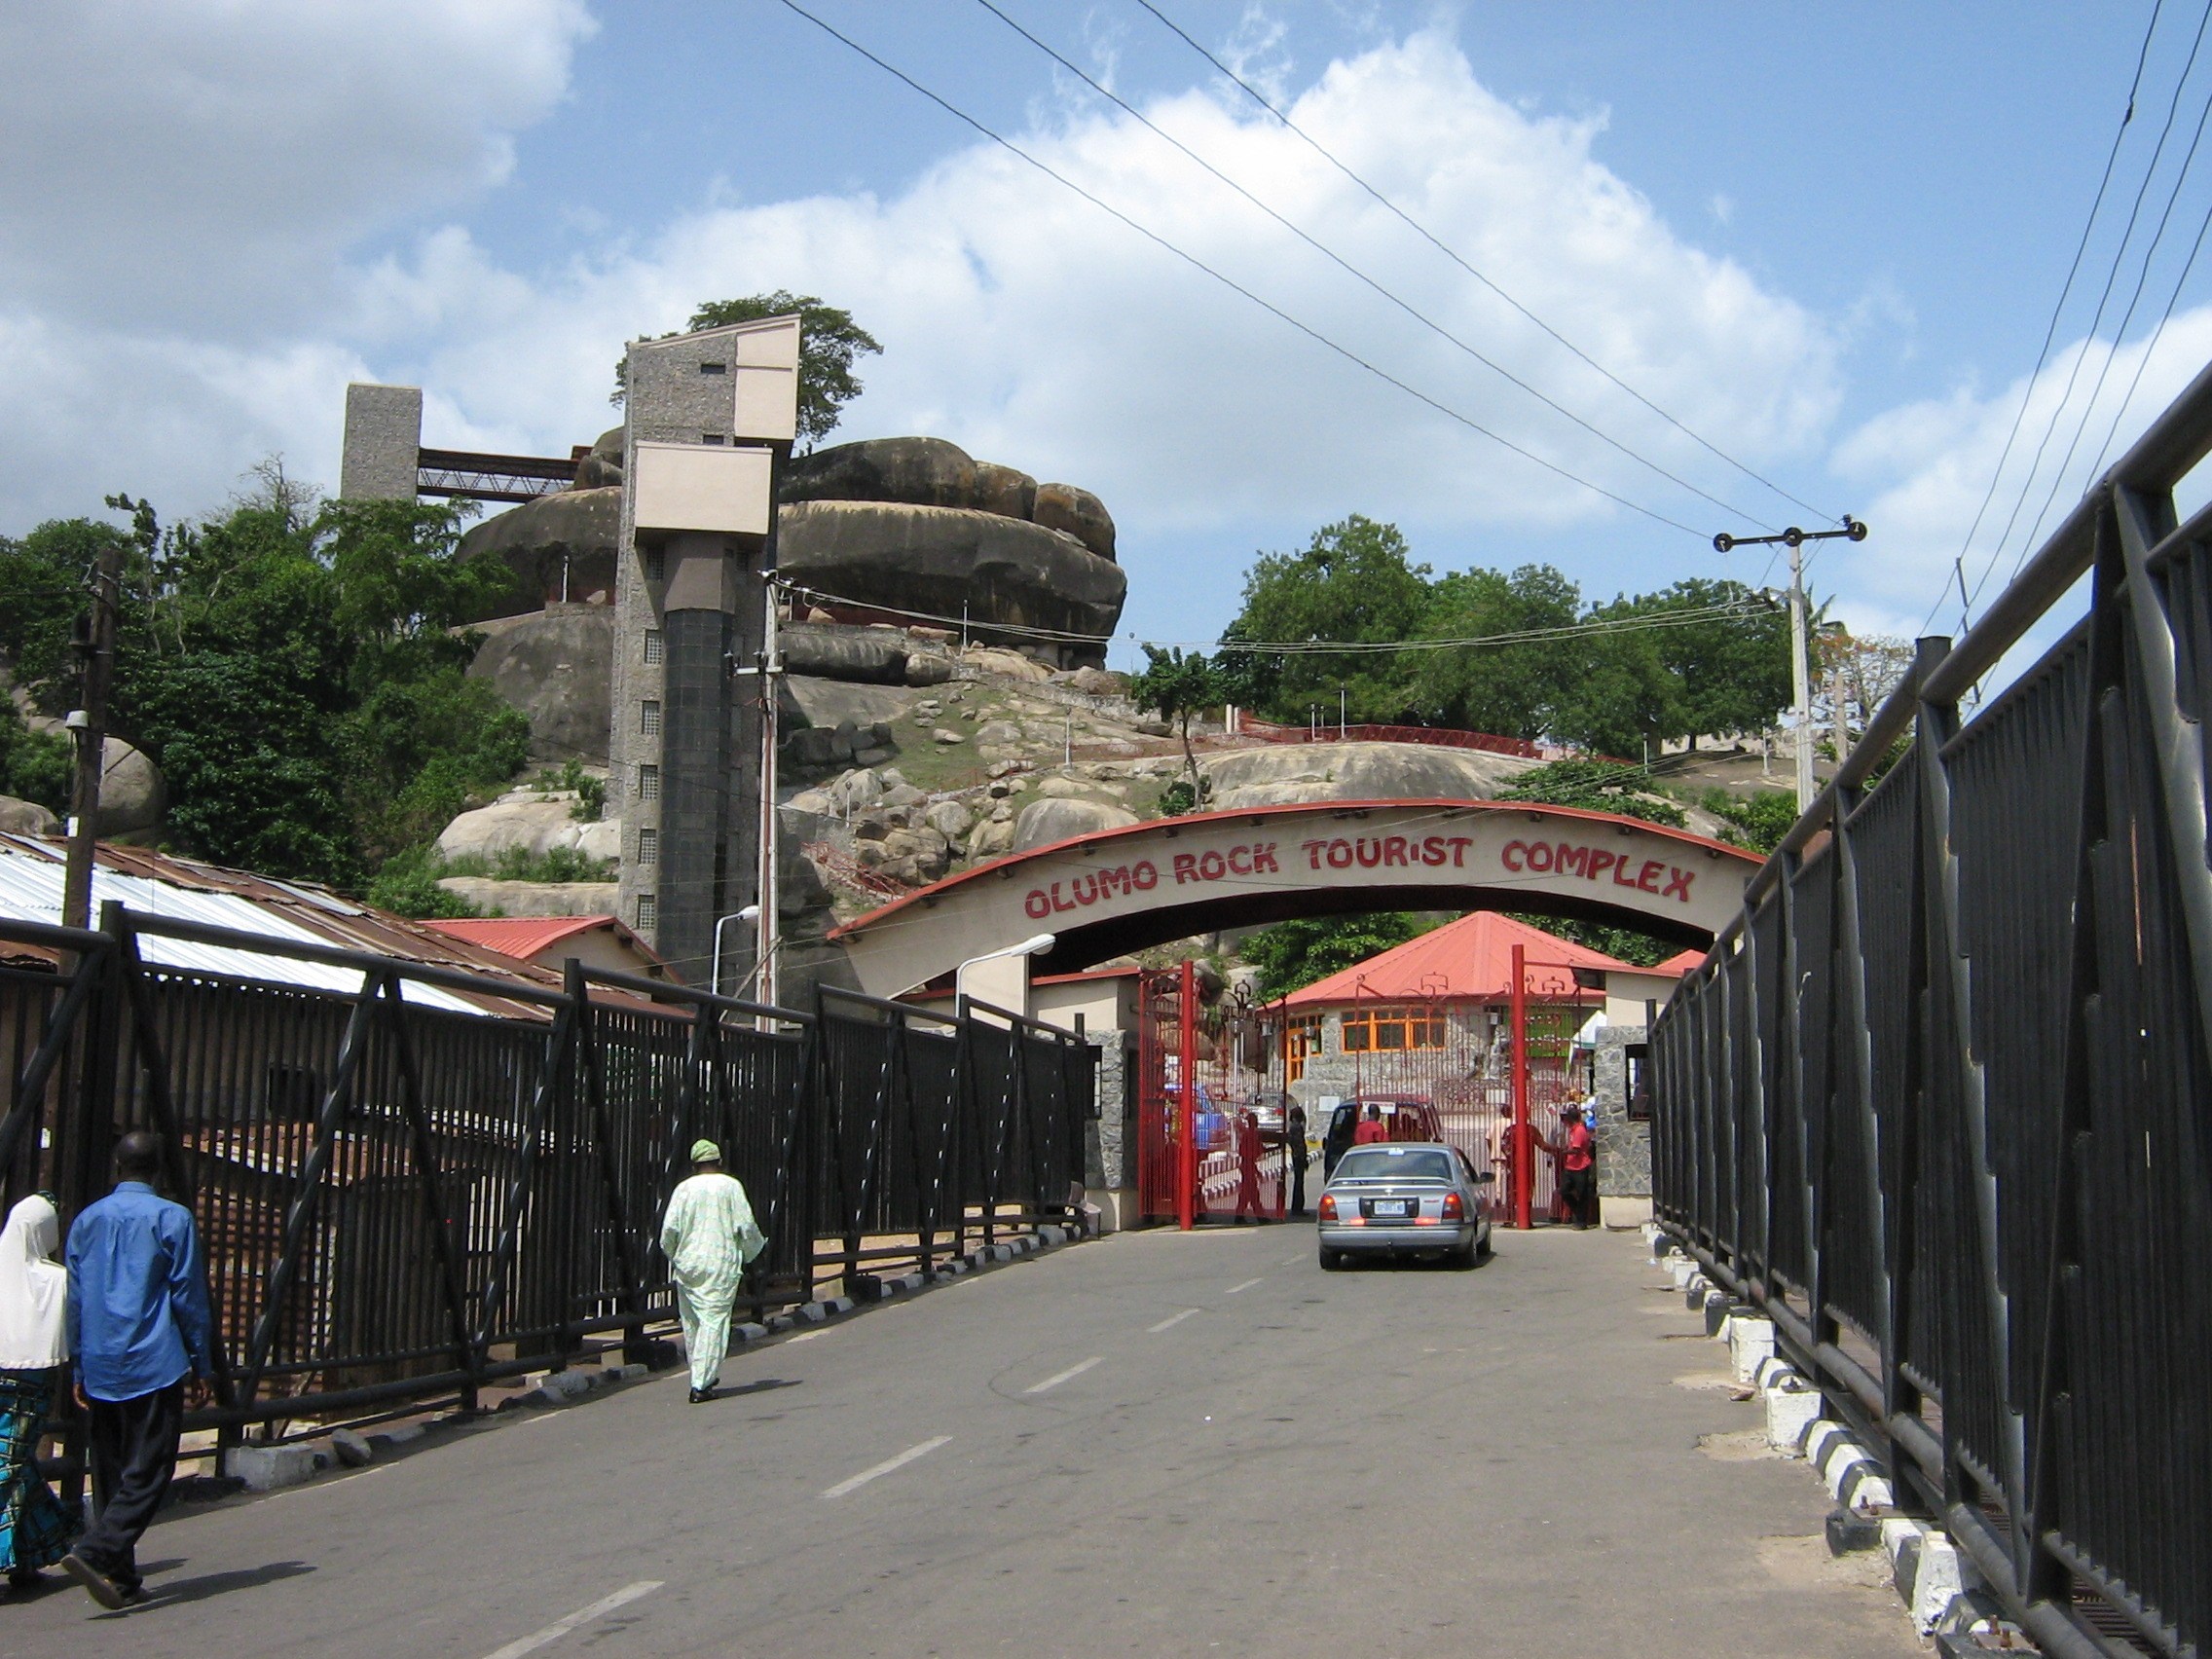 tourist attractions in Ogun state